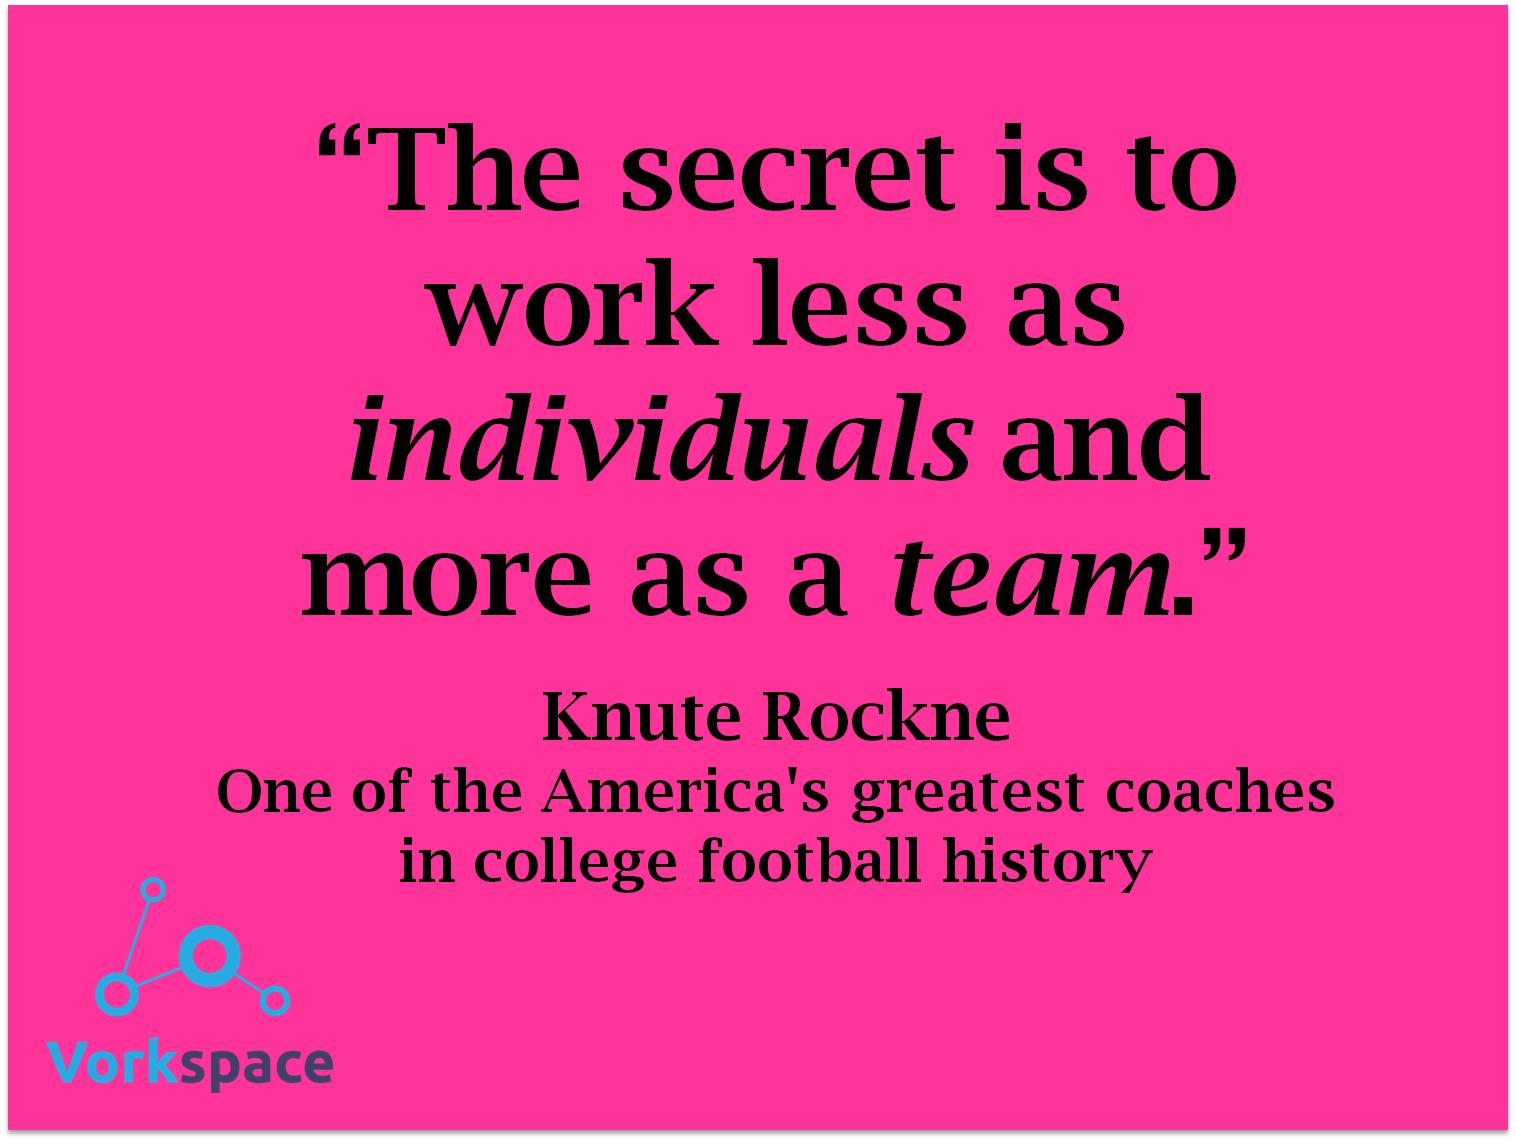 knute kenneth rockne a norwegian football player You are knute—and upon this rockne i will build  the eighth man on that plane was knute kenneth rockne  there's no doubt rockne was a decent football player.